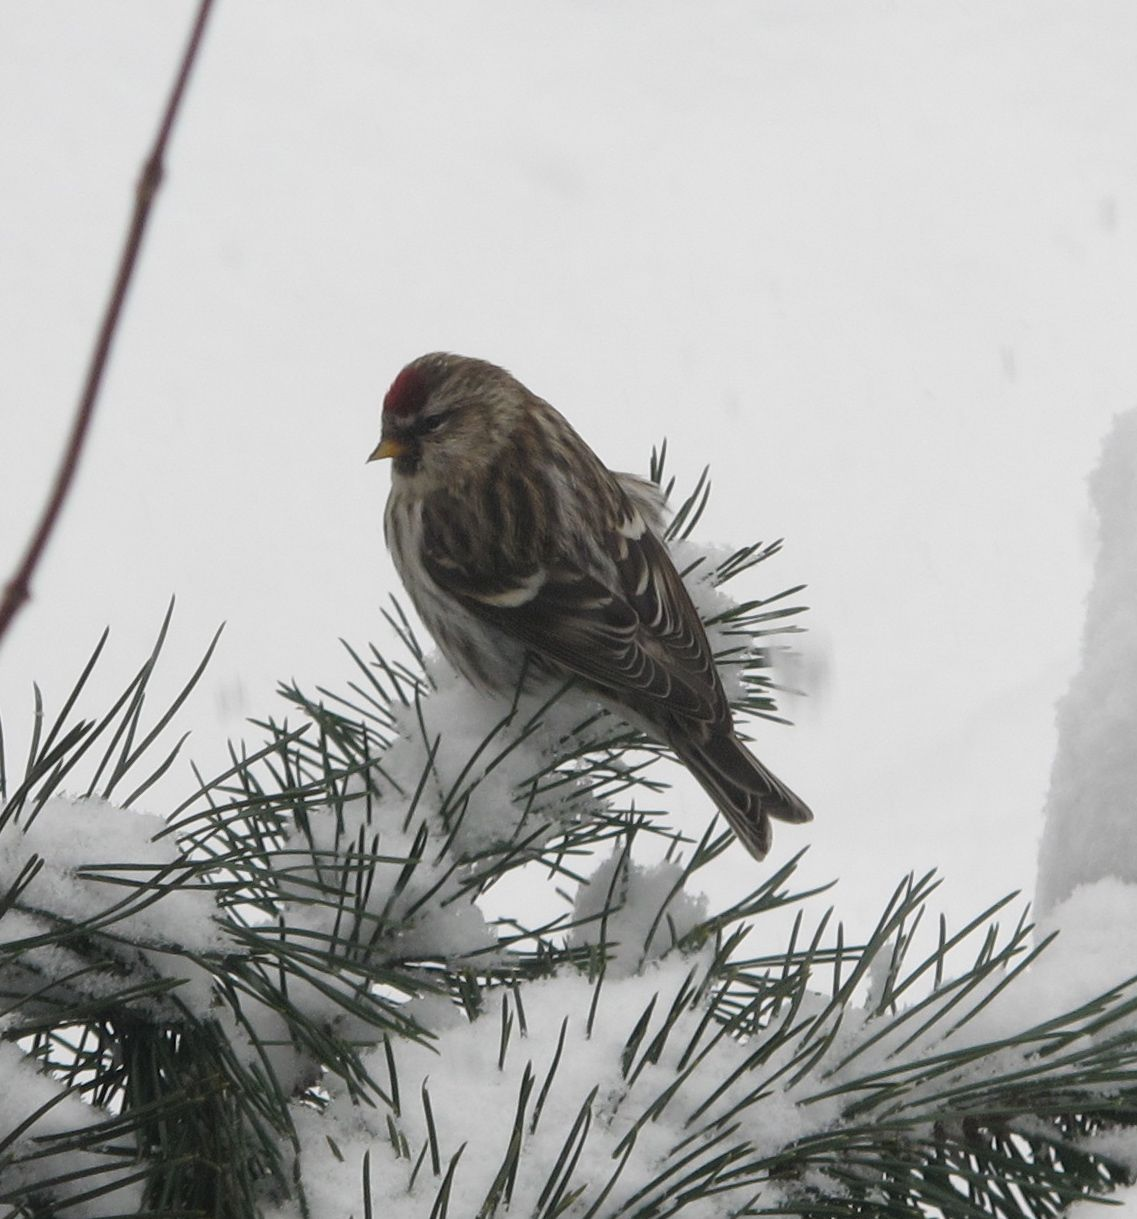 A flock of common redpolls (a type of finch) showed up for a one-day visit in the middle of a snowstorm over the weekend.